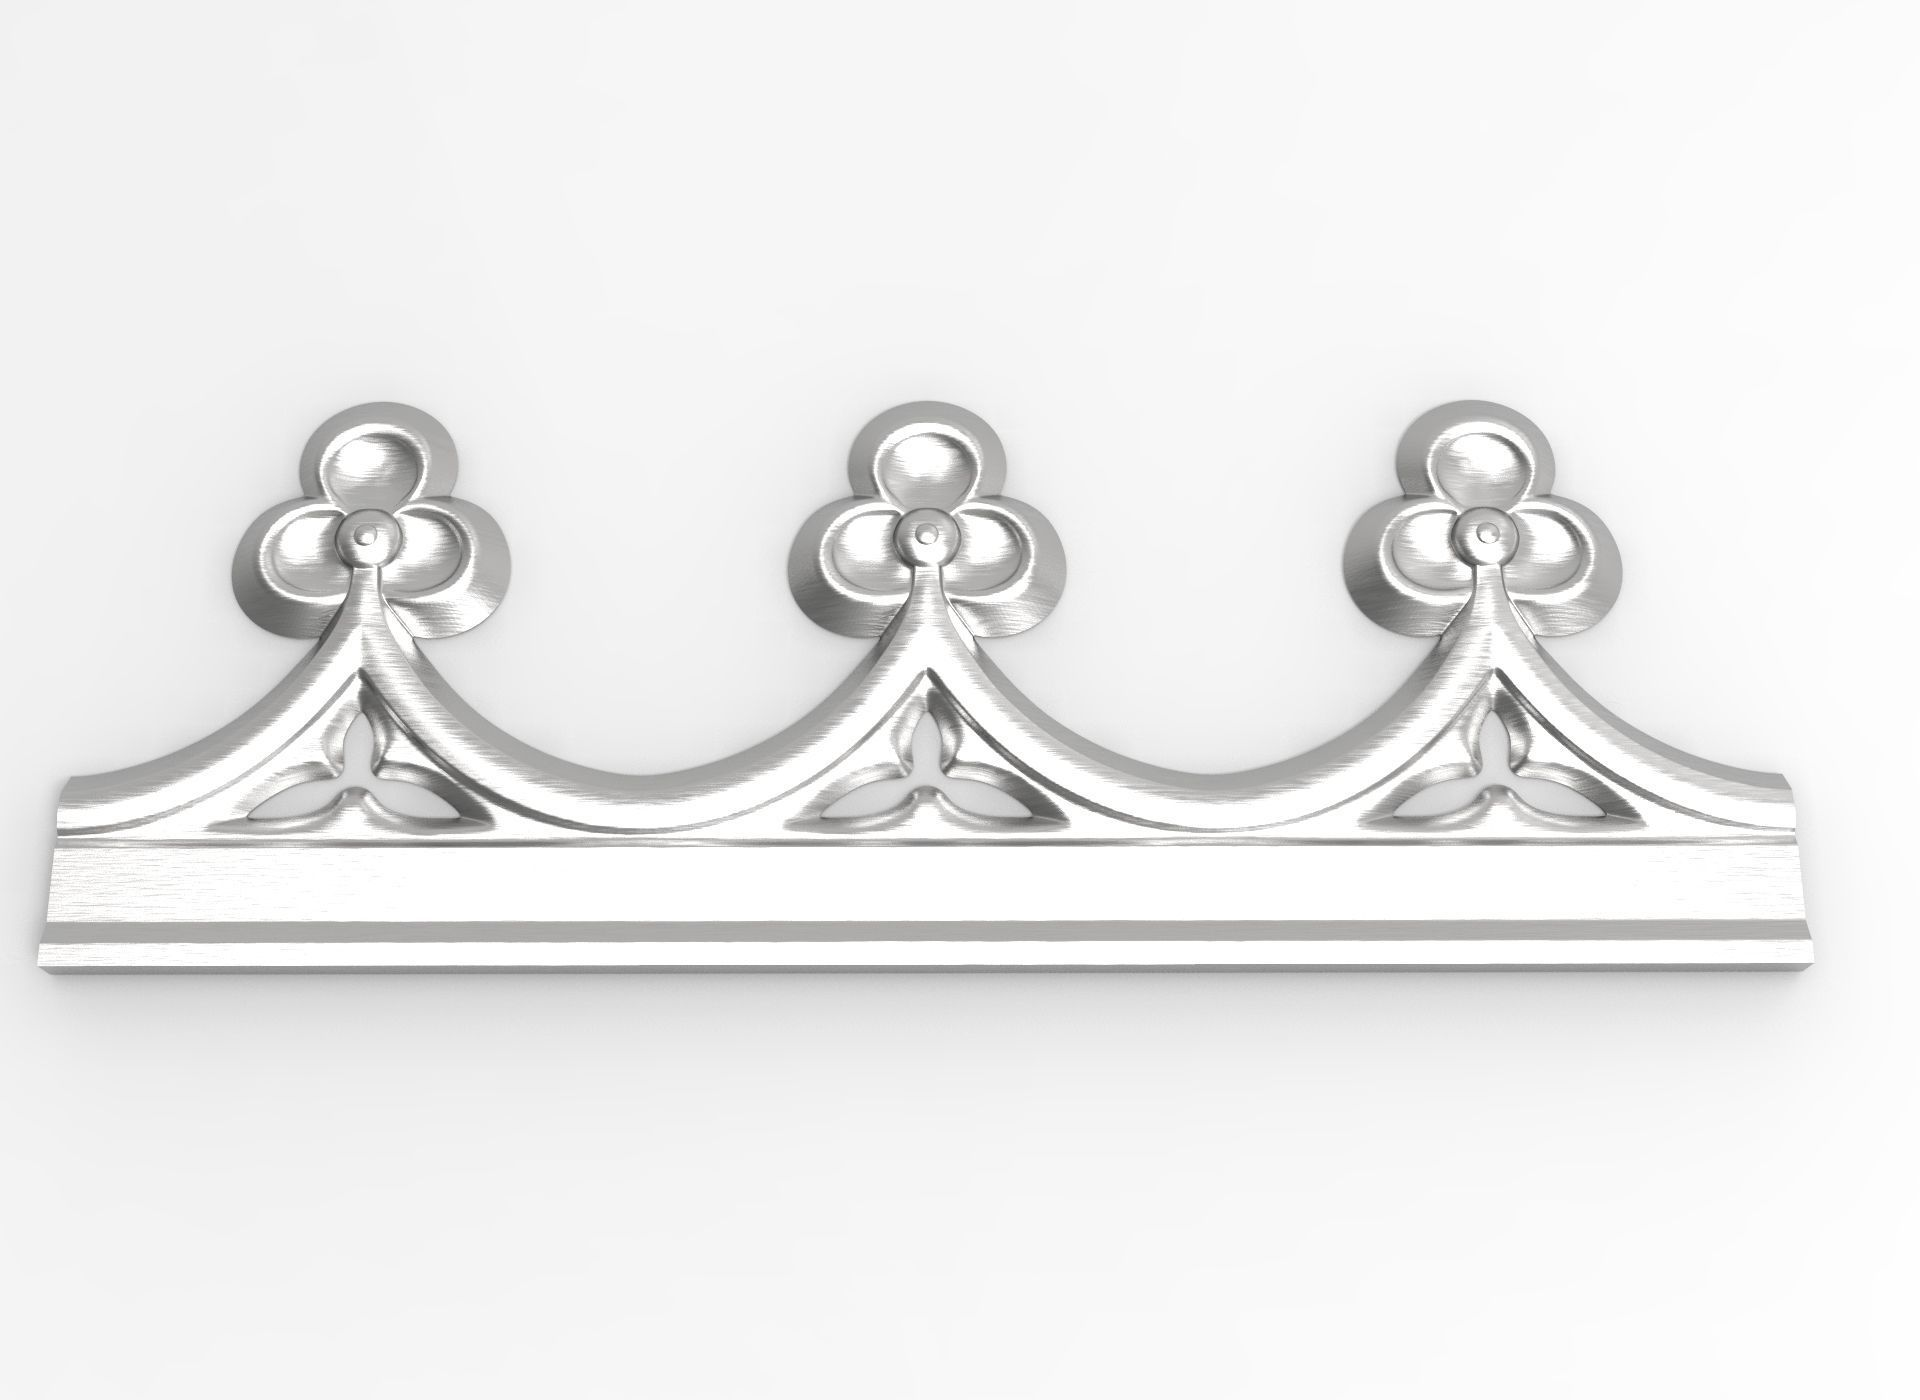 Decorated friezes with trefoil for CNC on printer HD model